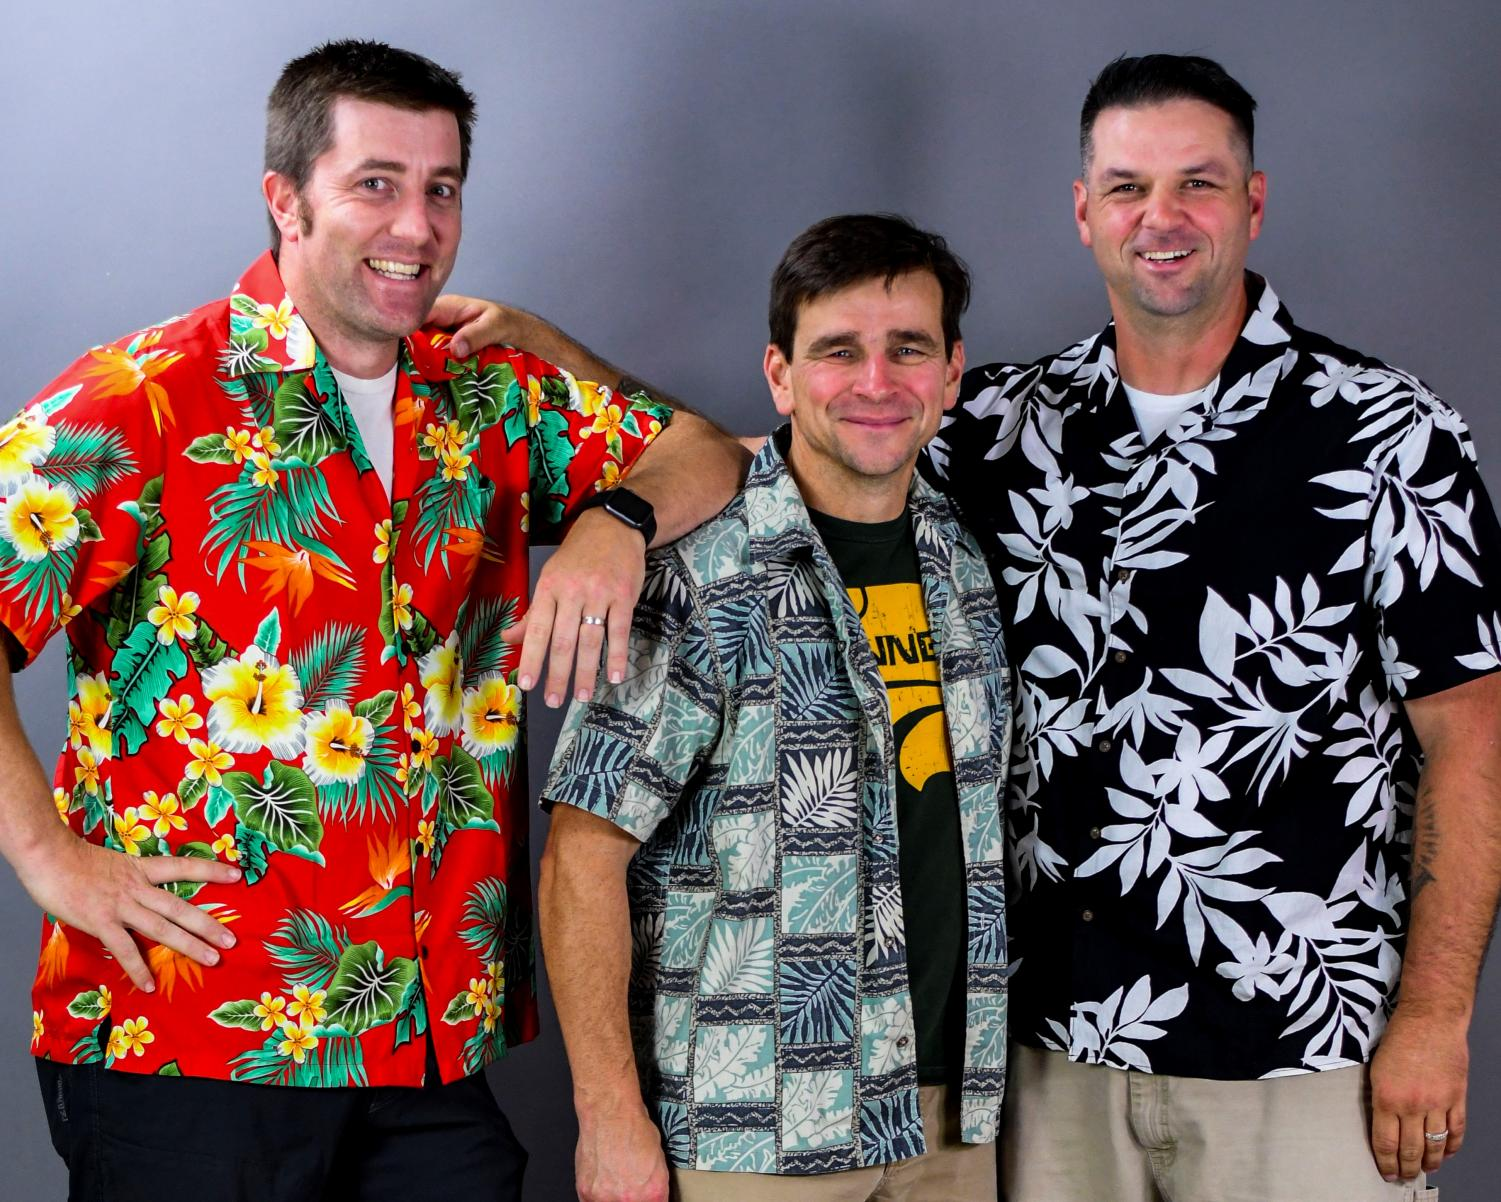 Steven Tolly, Dan Carolin, and George Anderson all wearing their Hawaiian shirts in memory of their friend.